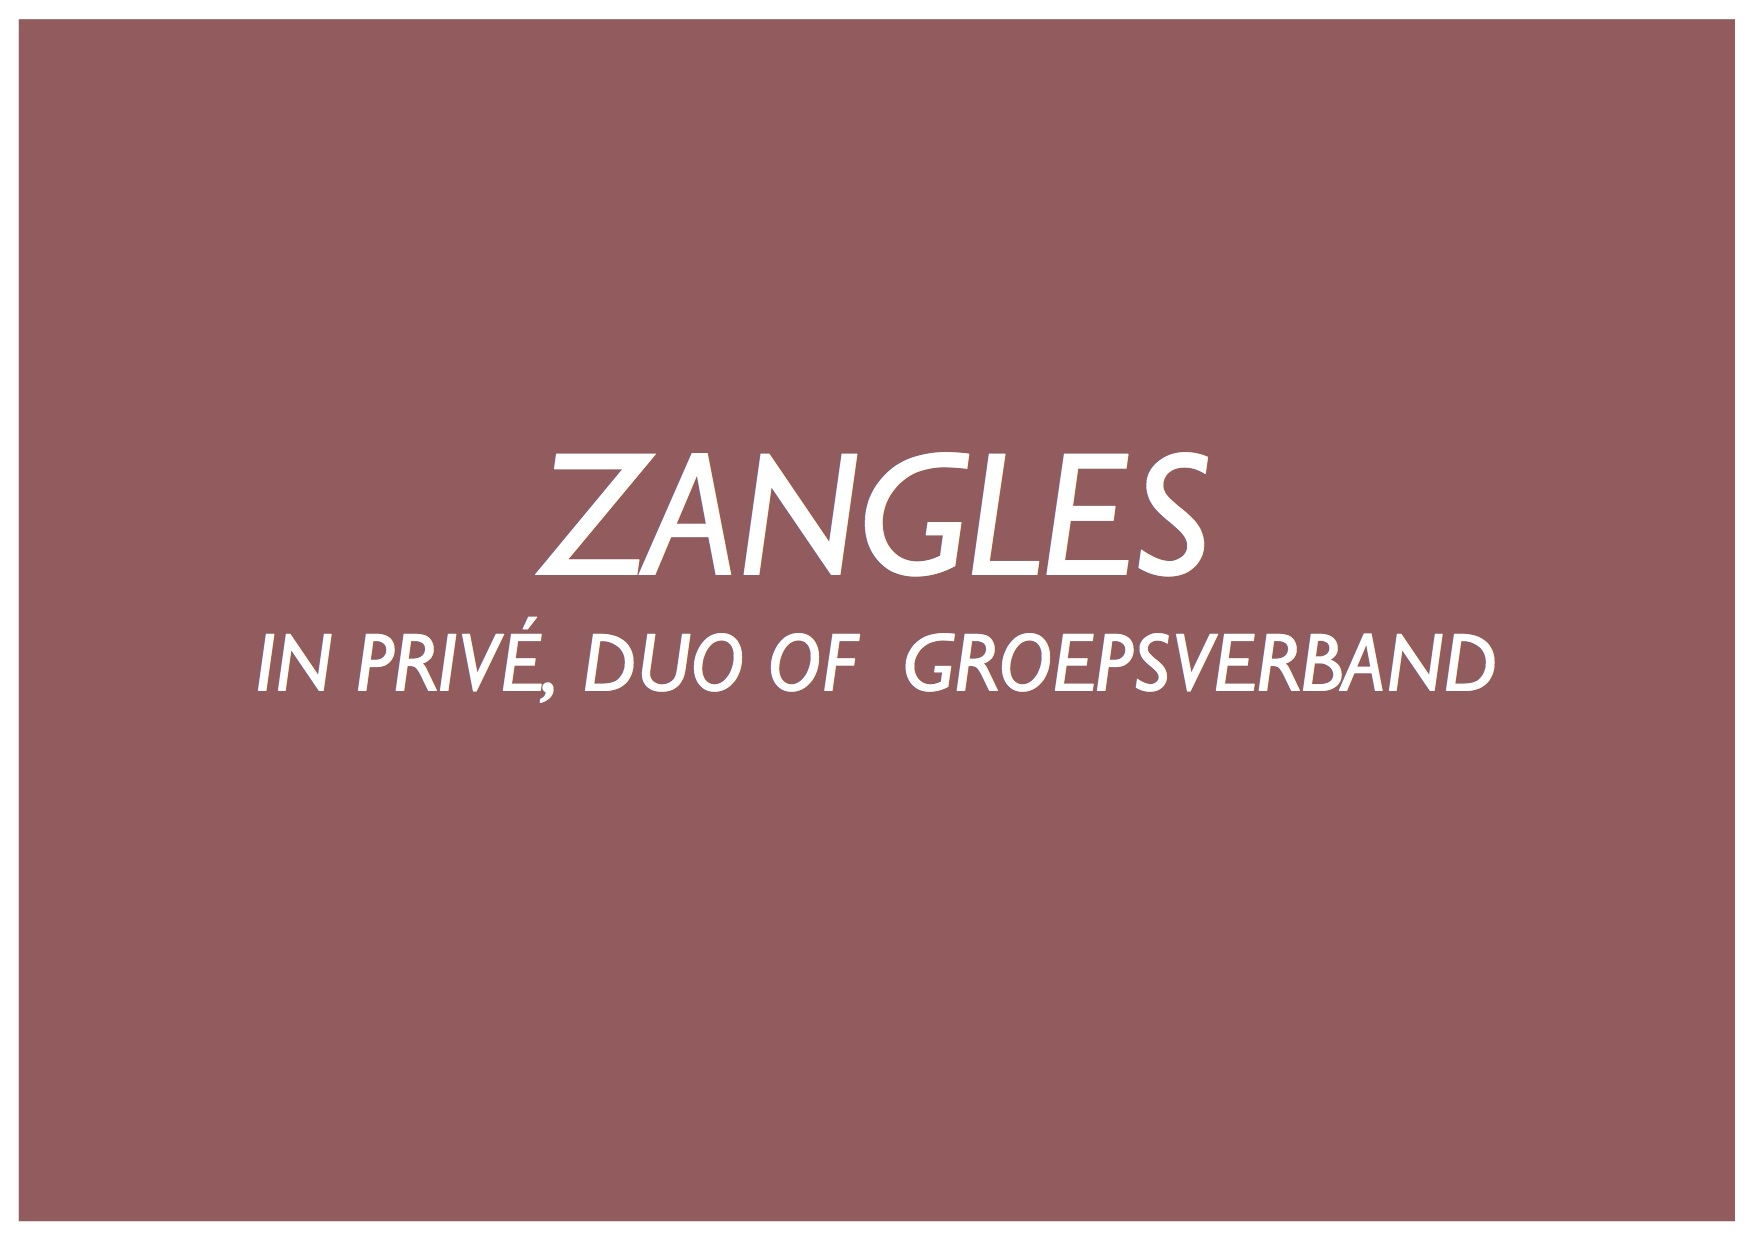 Zangles in privé, duo of groepsverband